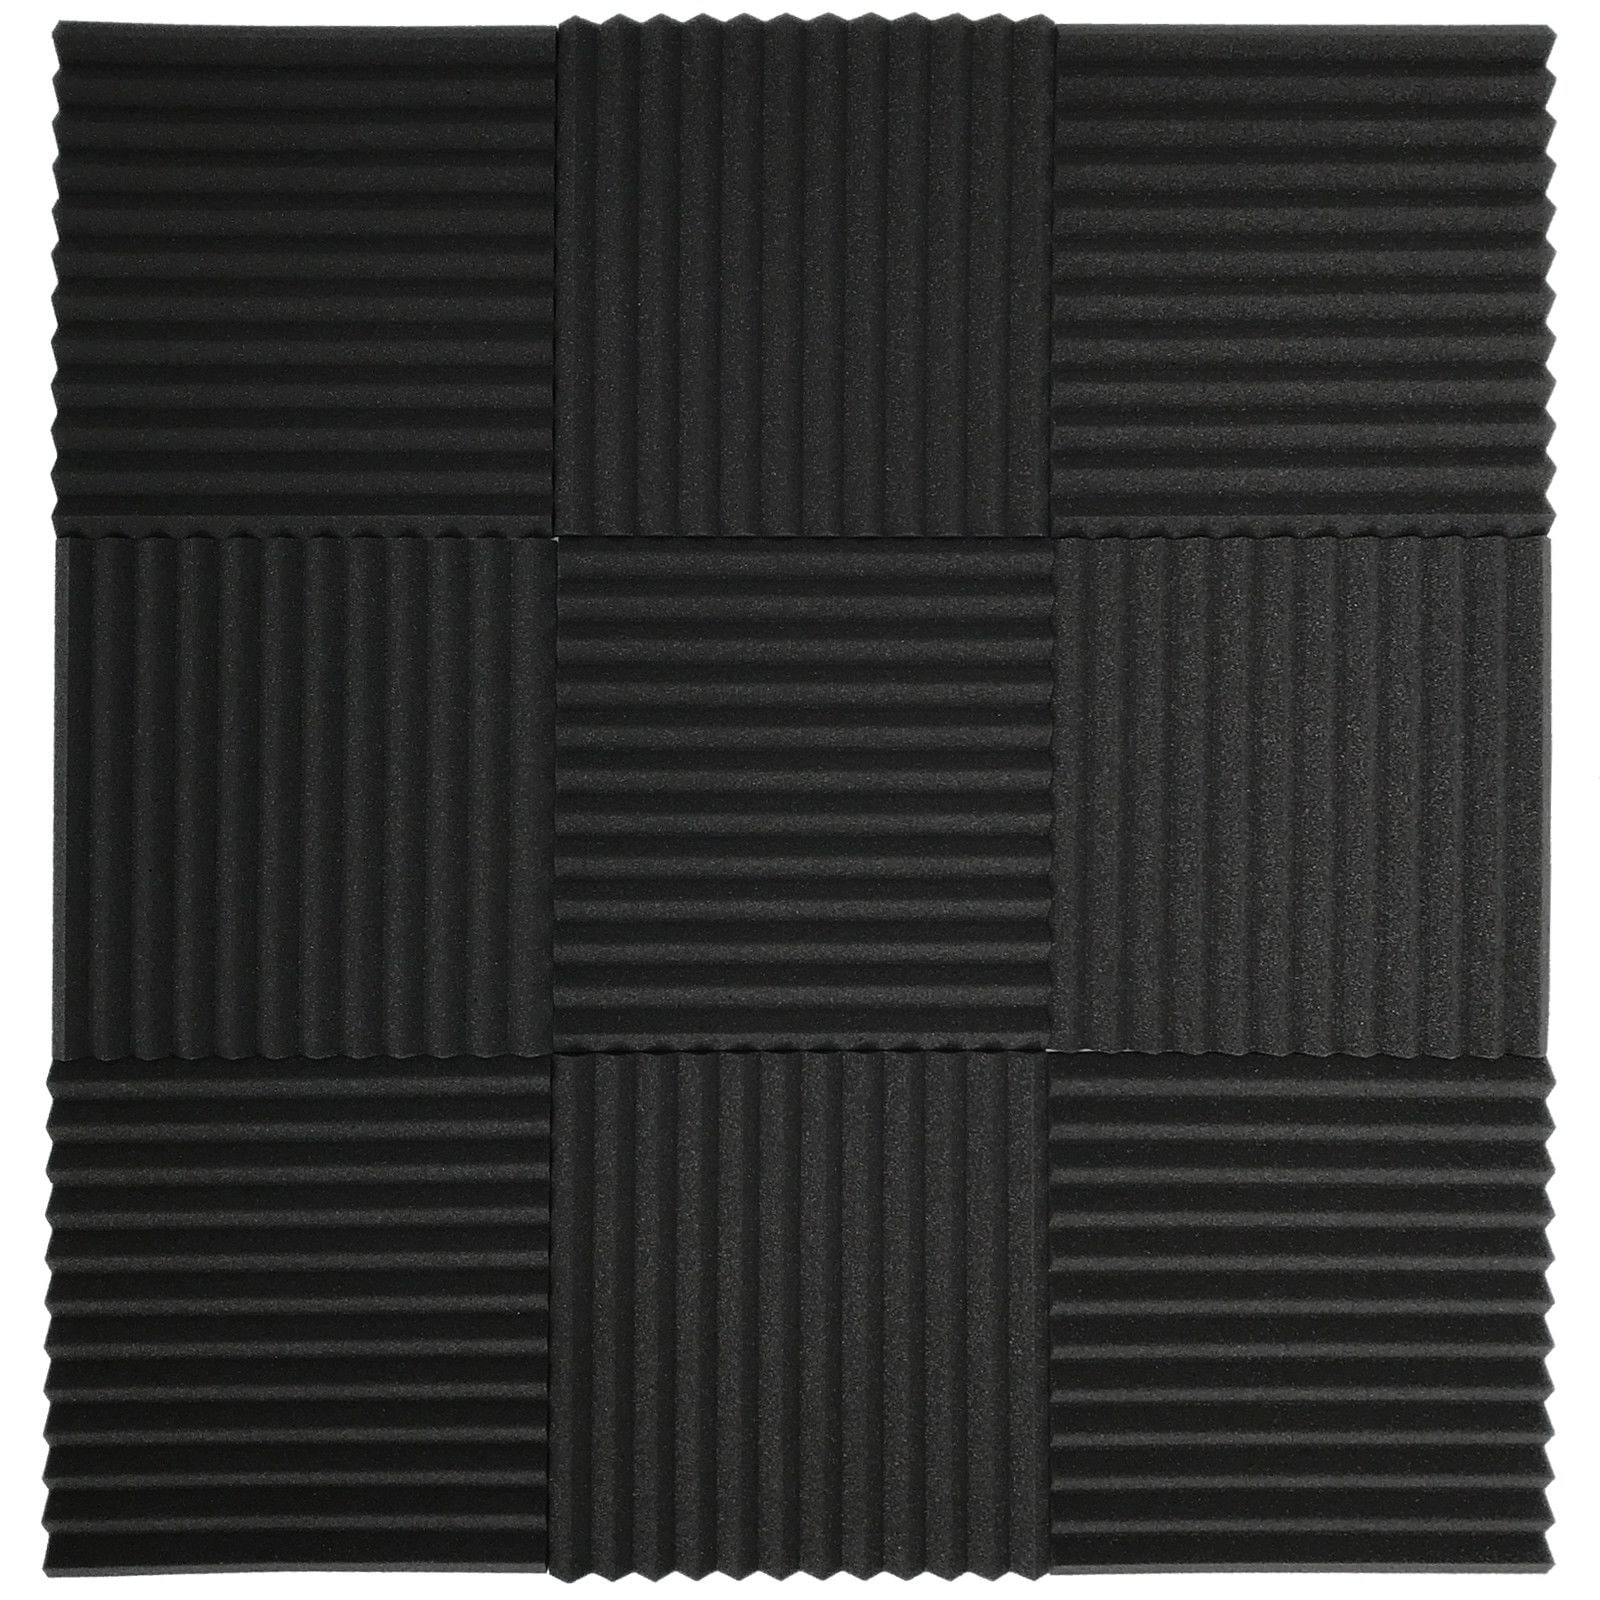 24 Pack Acoustic Foam Panel Wedge Studio Soundproofing Wall Tiles 12x12x1 Charcoal Free Shipping Today 23388434